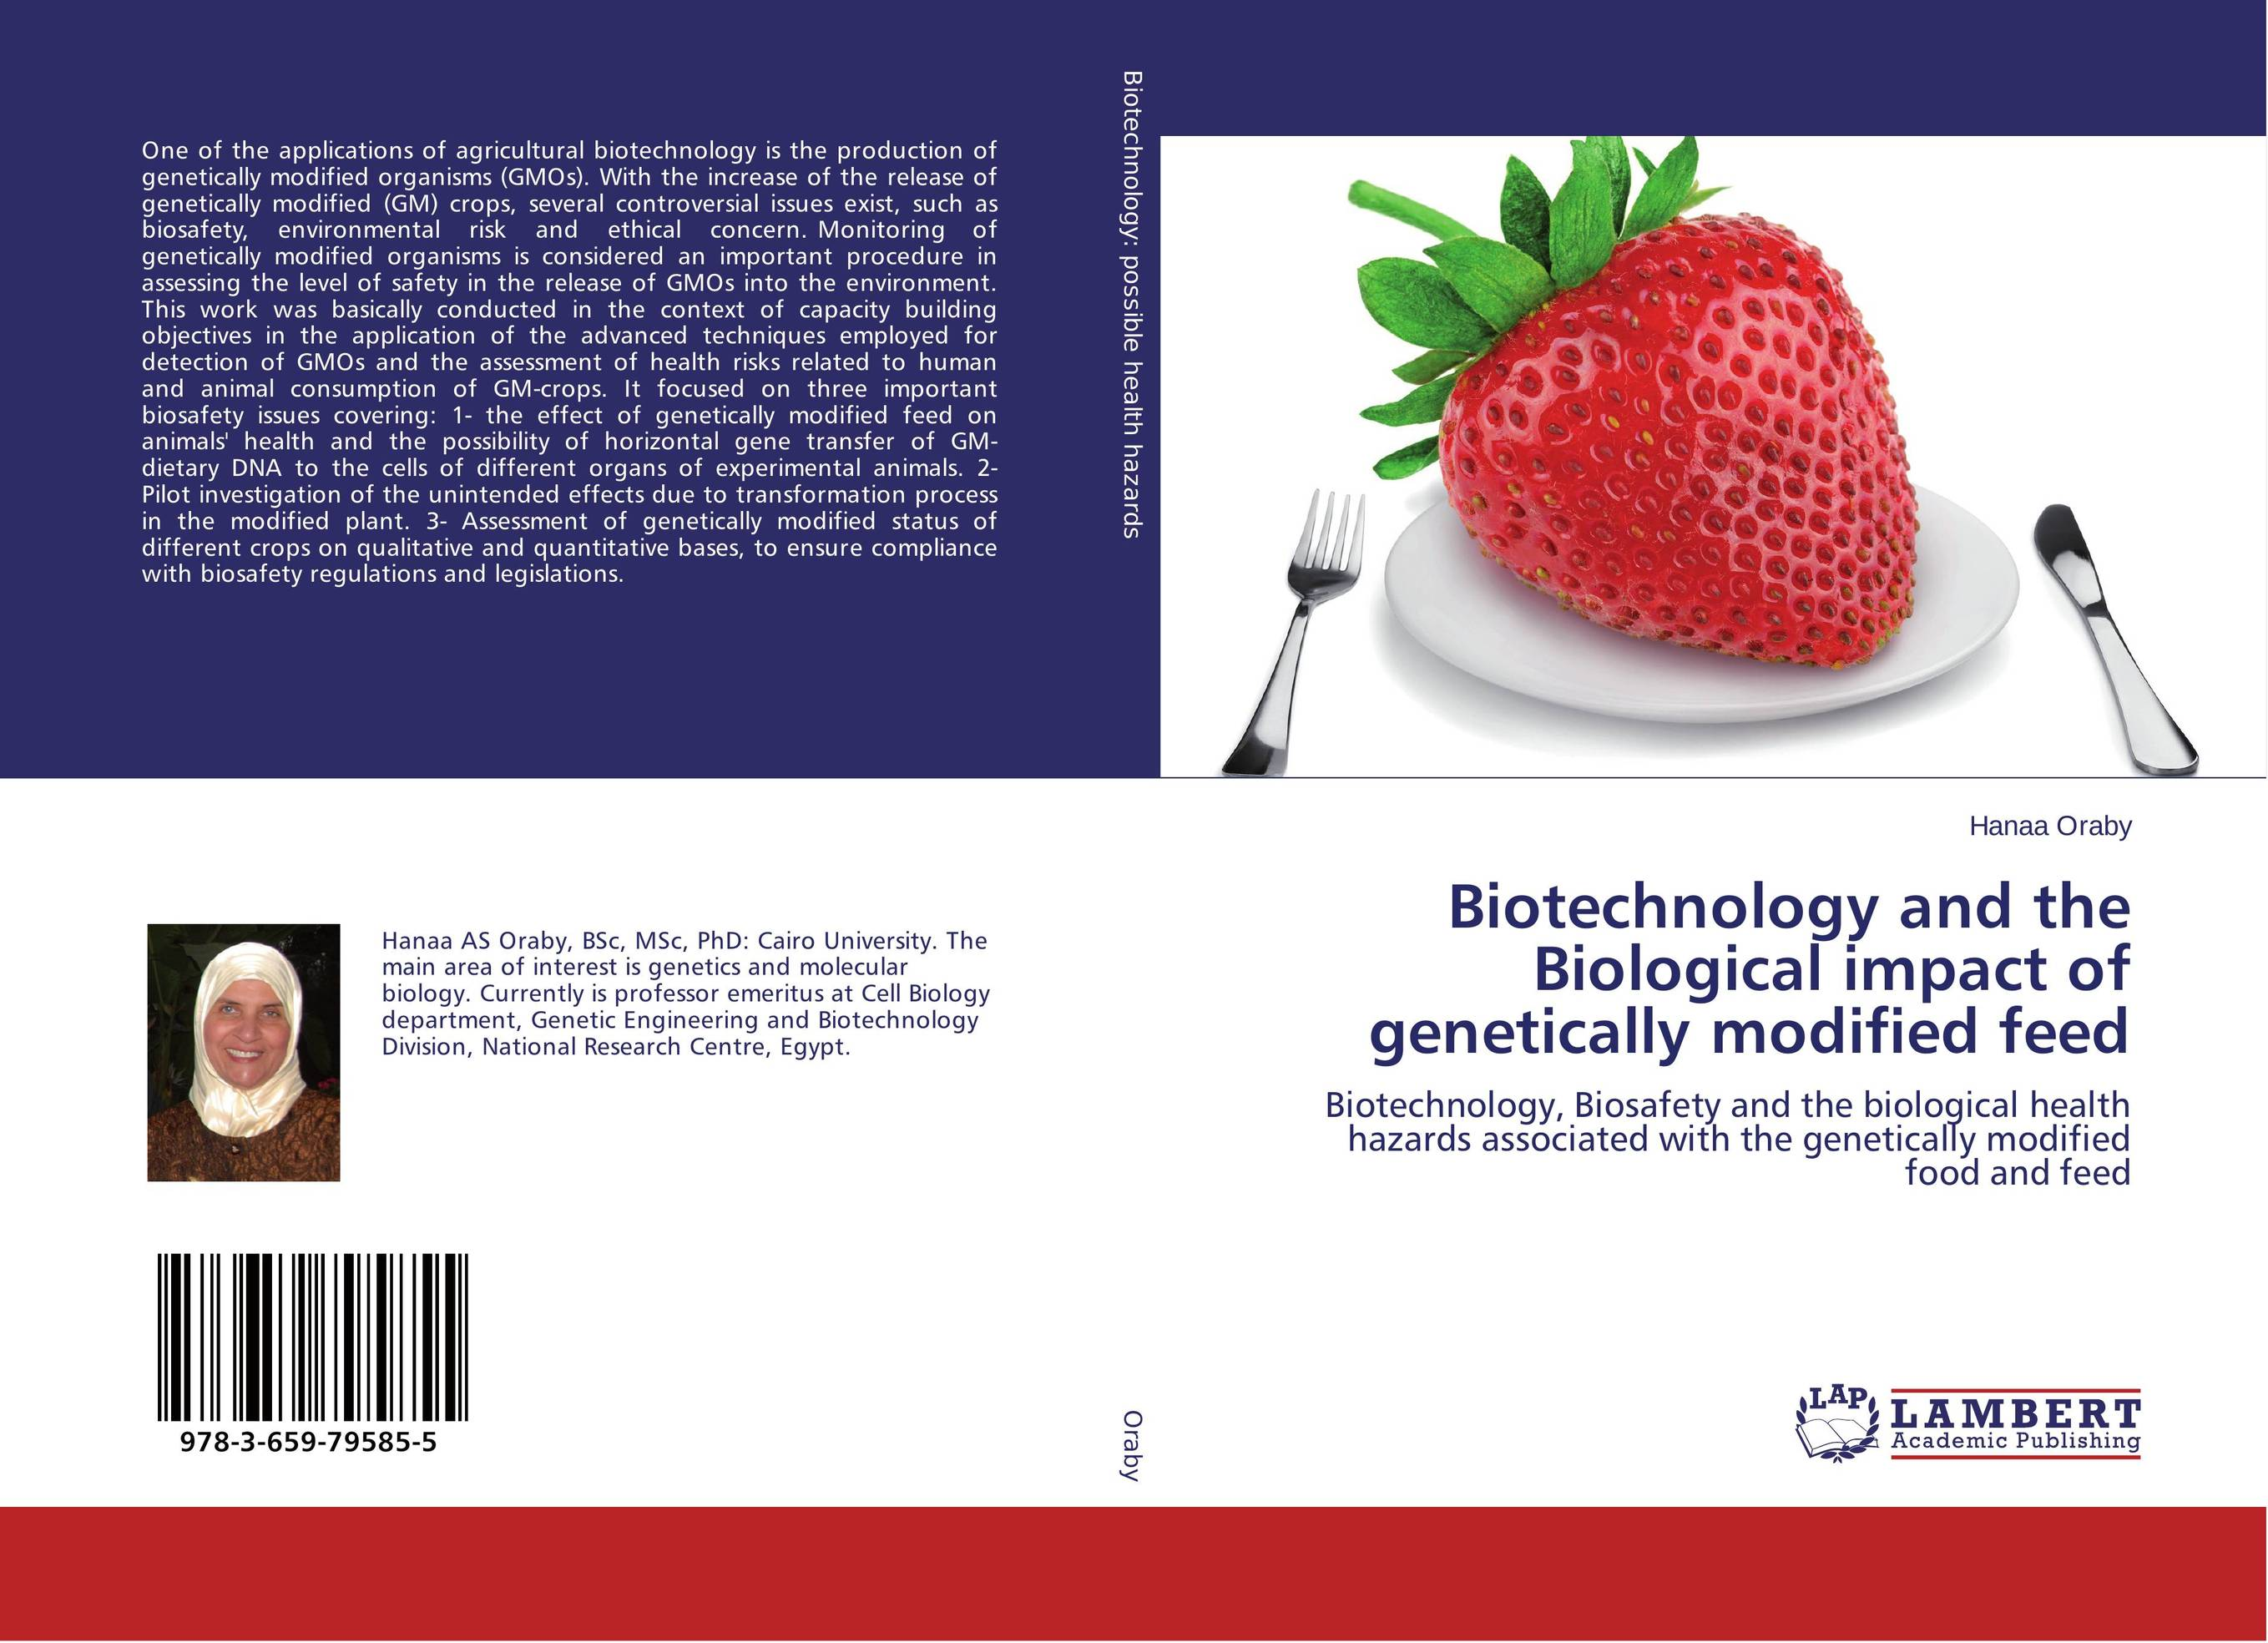 Biotechnology and the Biological impact of genetically modified feed rakesh kumar tiwari and rajendra prasad ojha conformation and stability of mixed dna triplex